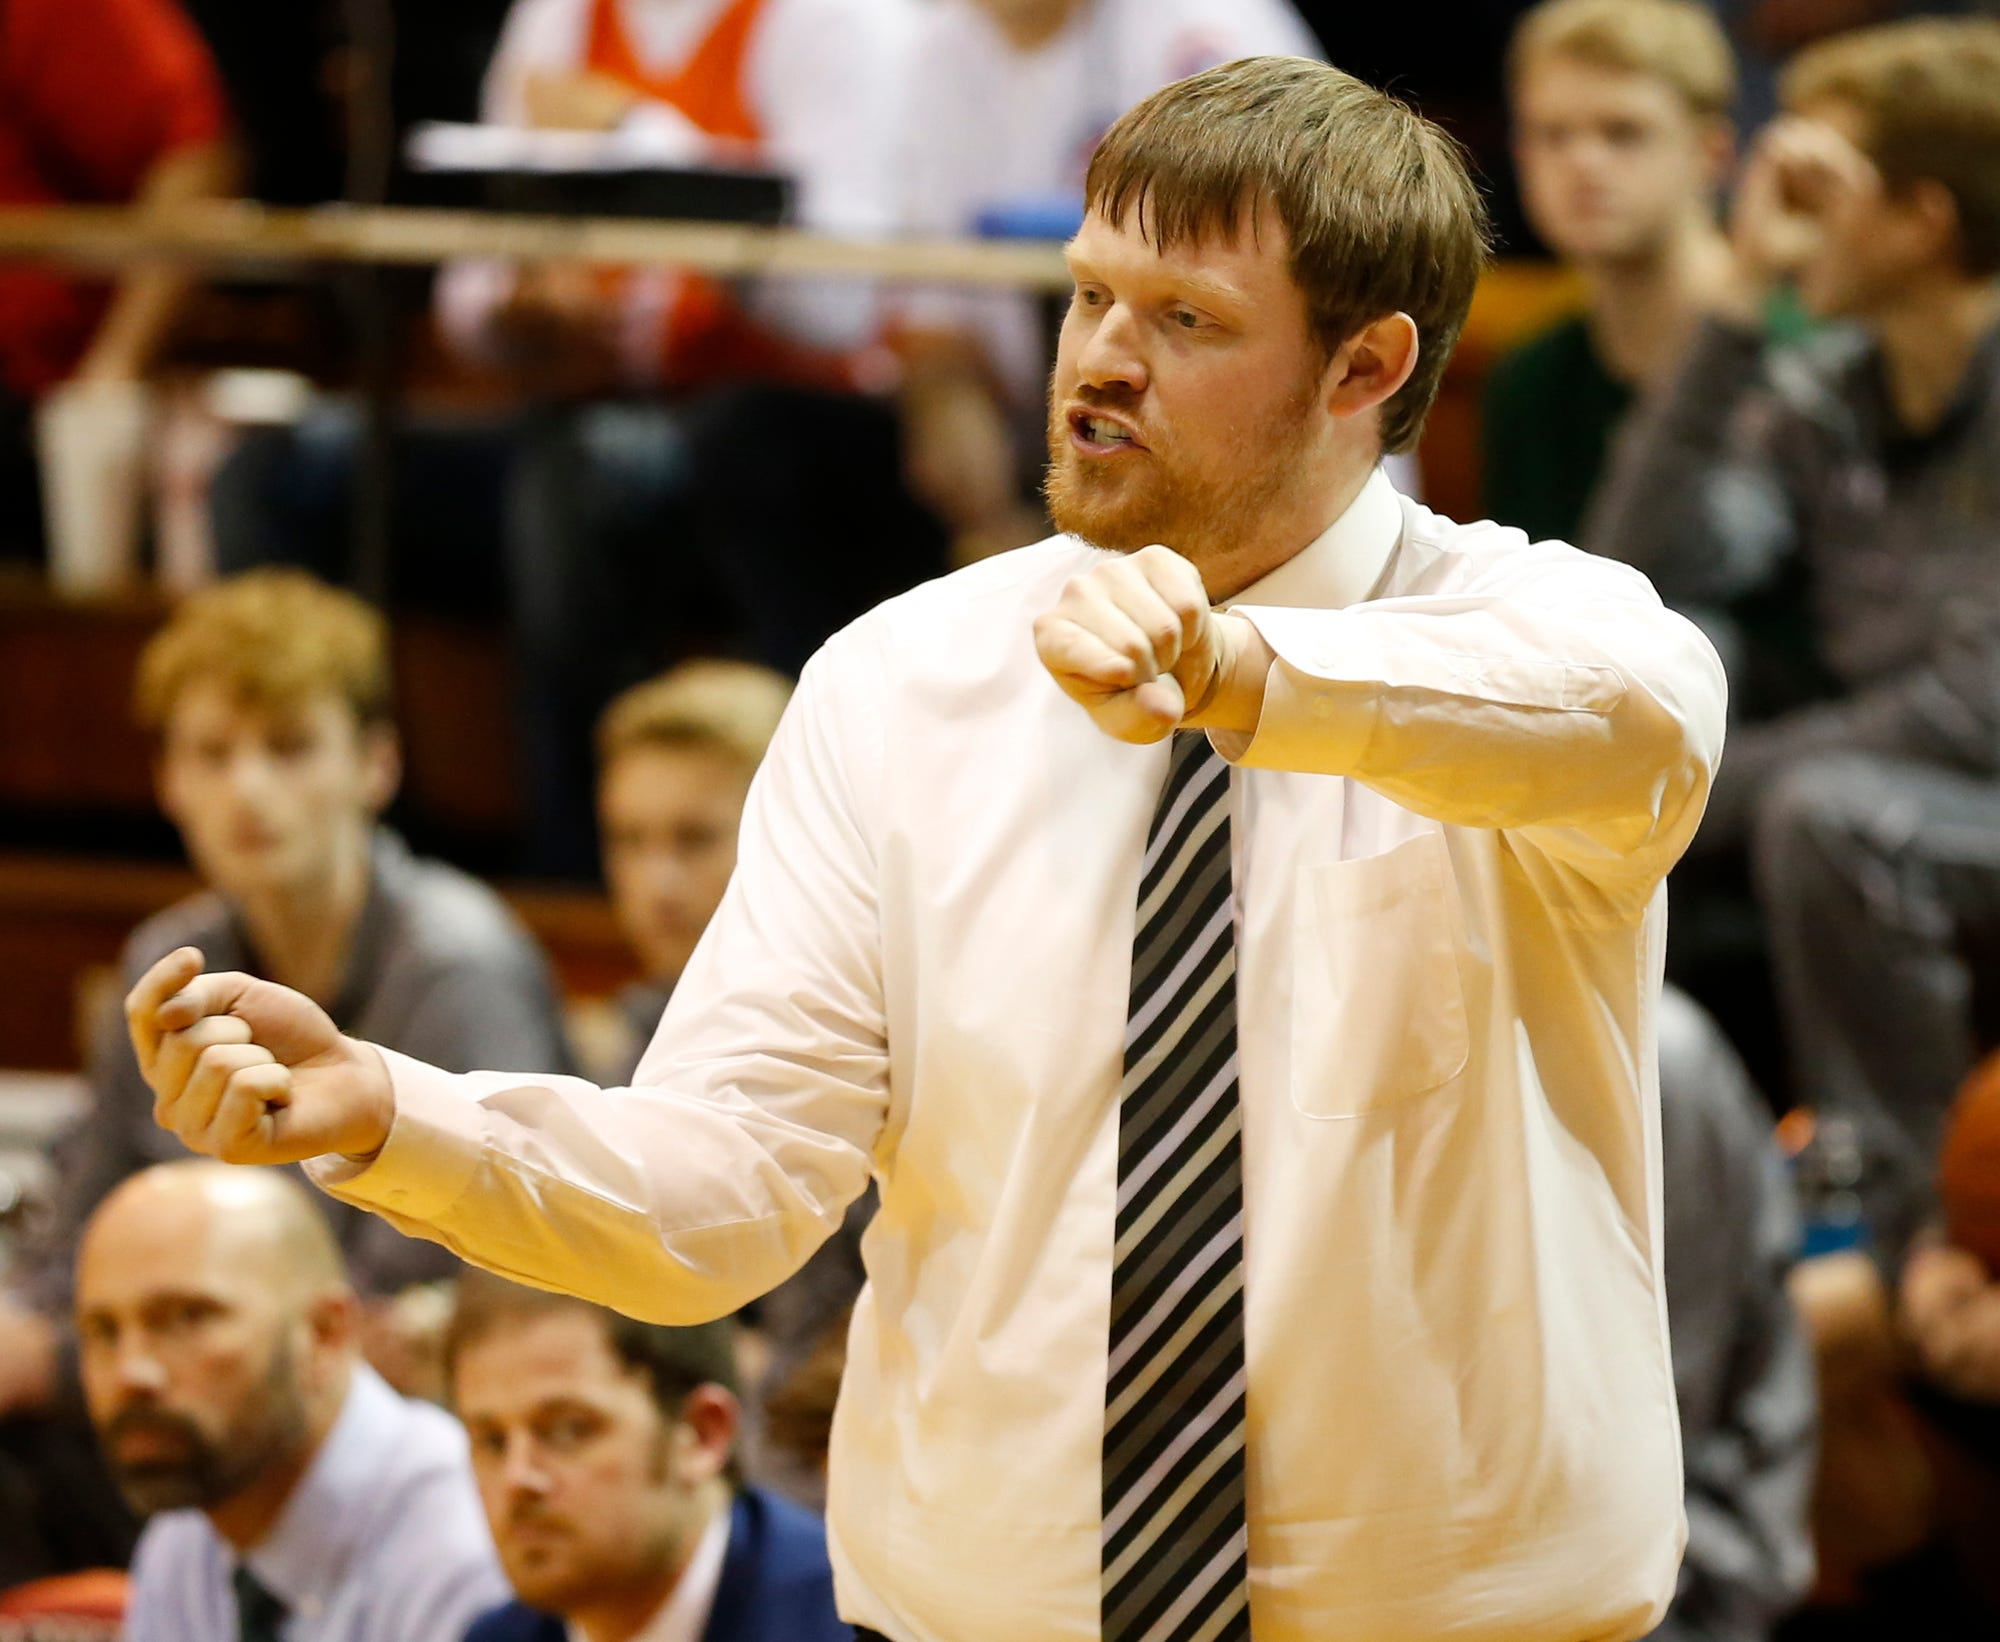 Jordan Myers coached Benton Central for two seasons. He's moving to Vincennes Lincoln to get closer to home.